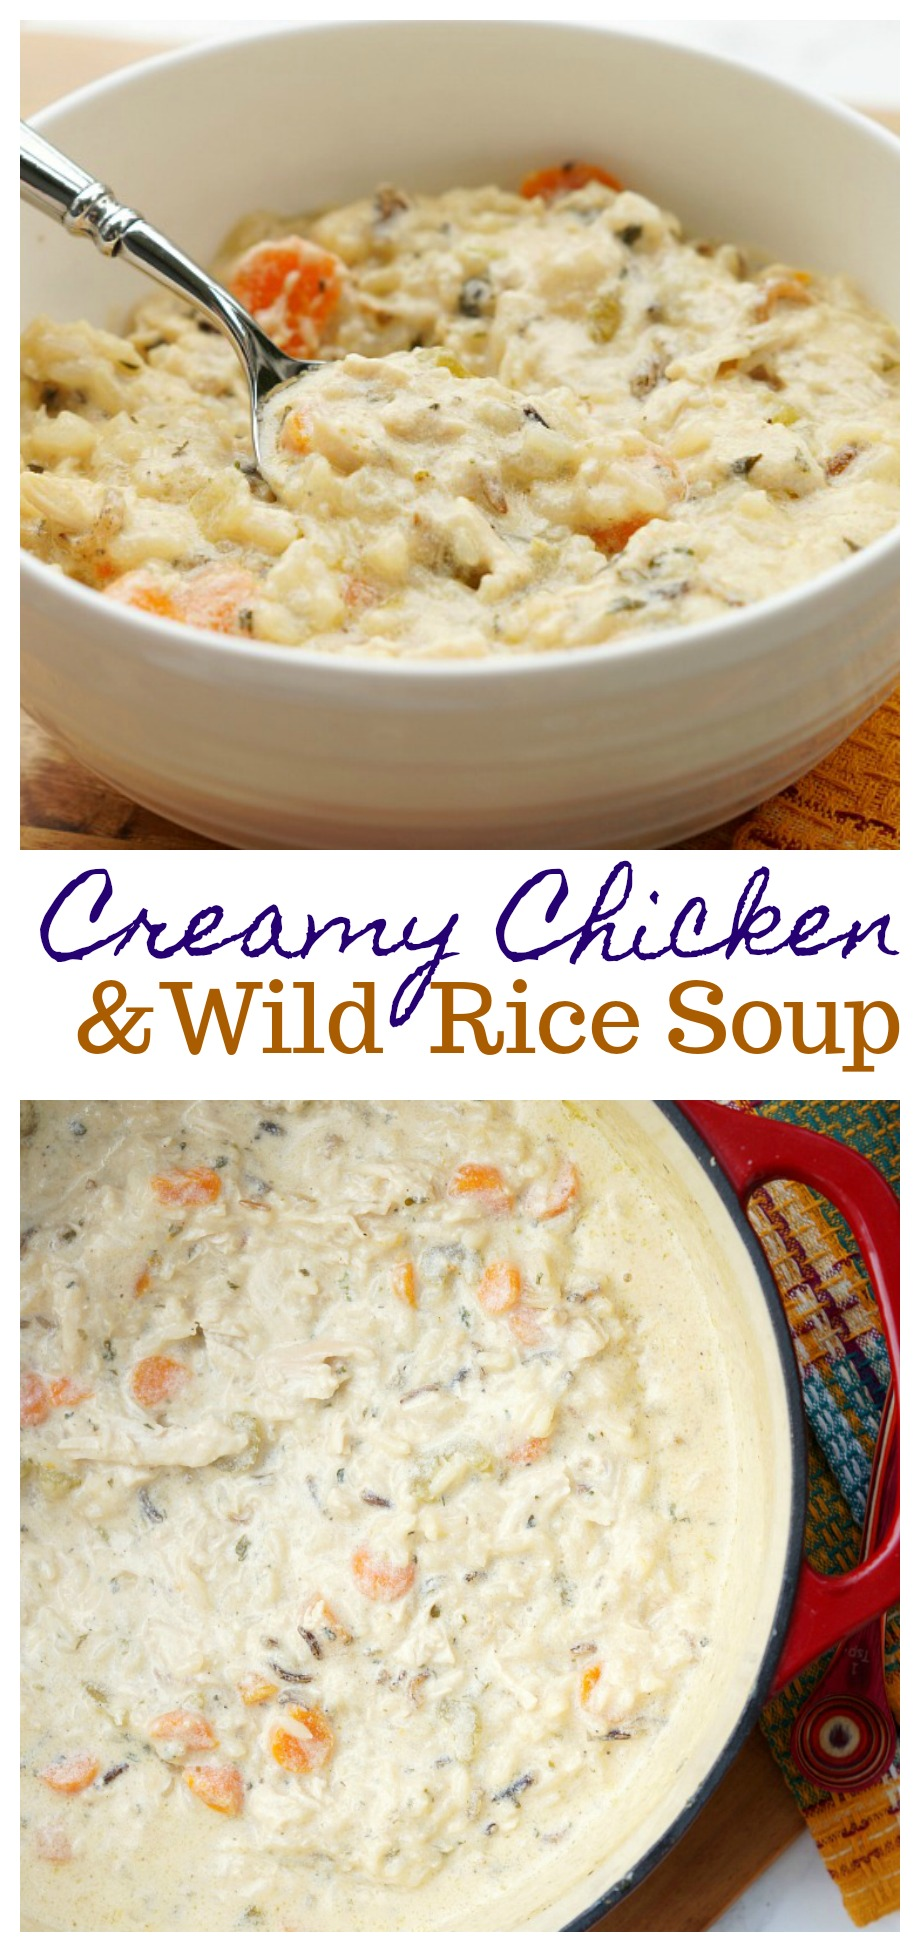 Quick and Easy Creamy Chicken and Wild Rice Soup. A filling comfort food meal that your family will love!